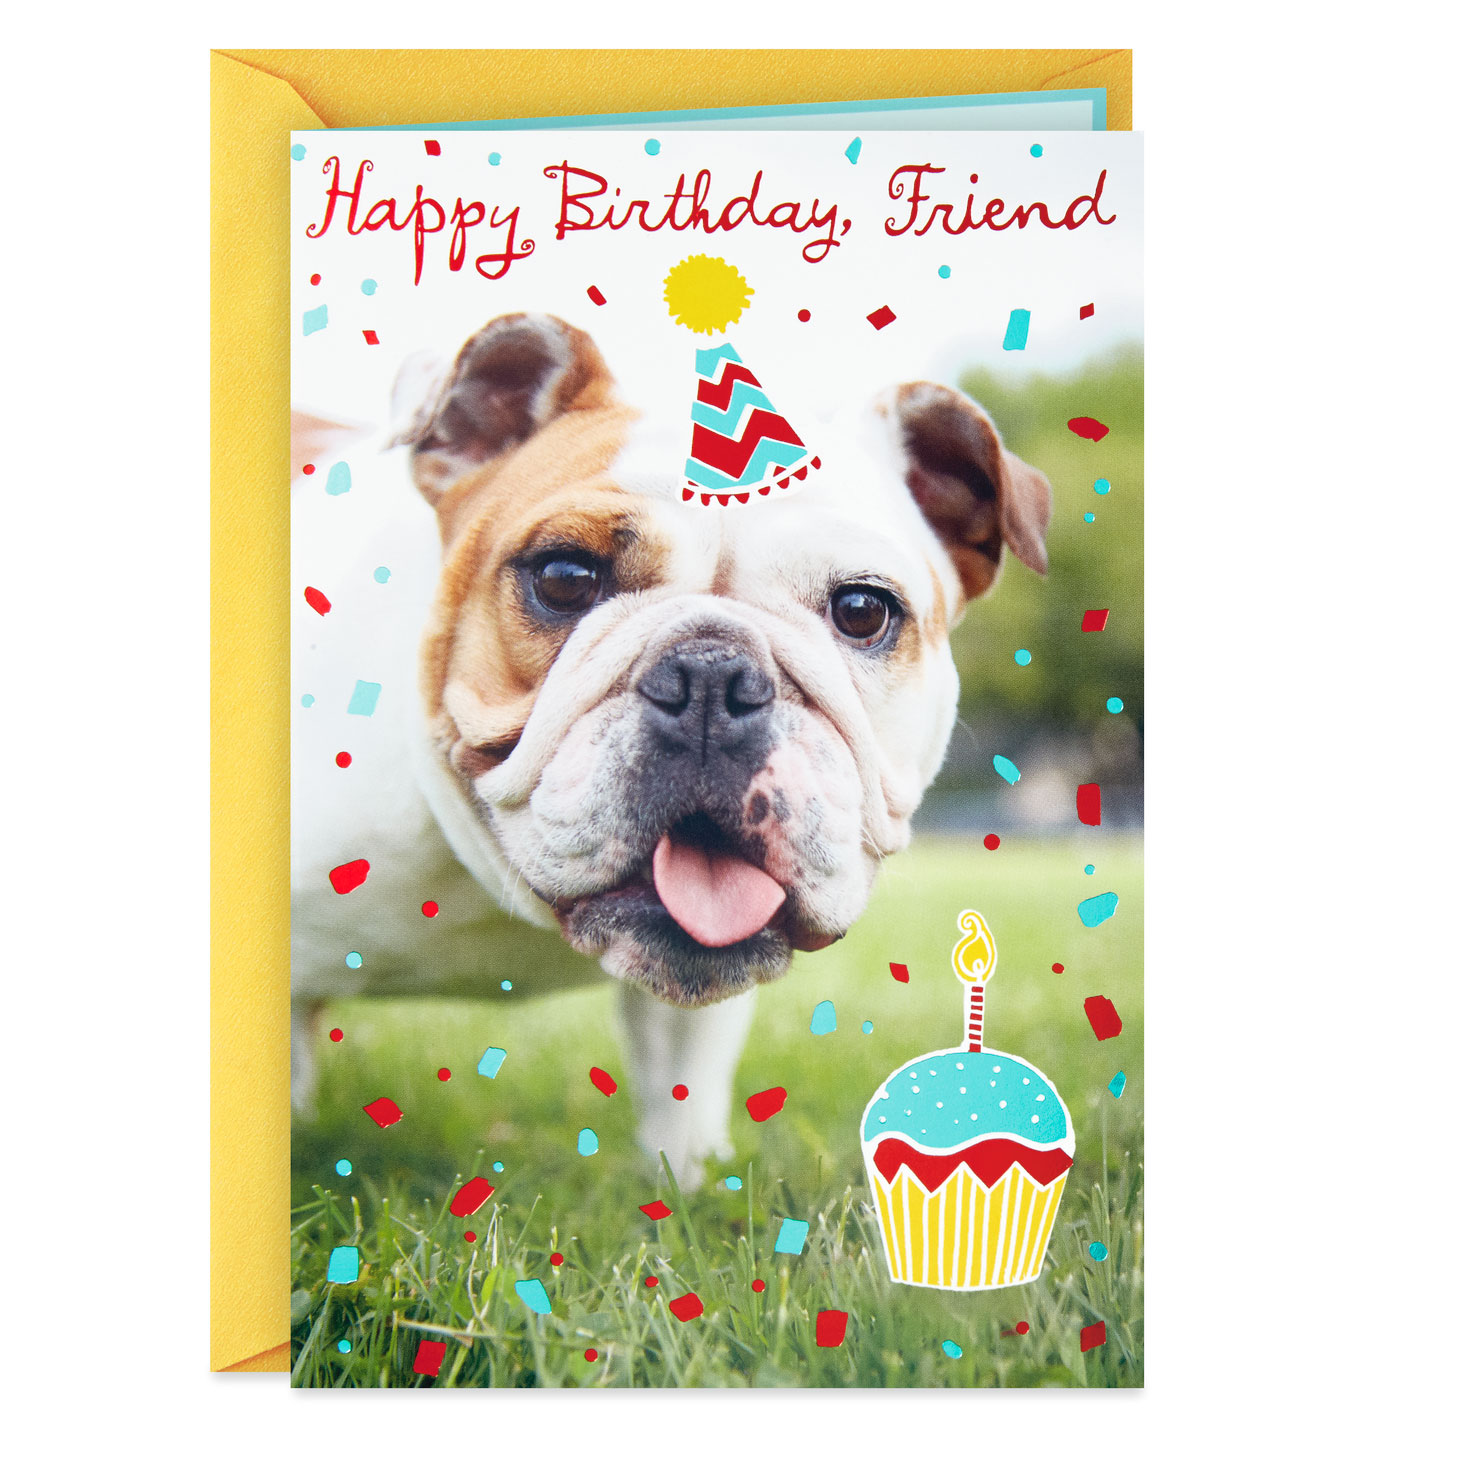 a day as special as you are birthday card for friend